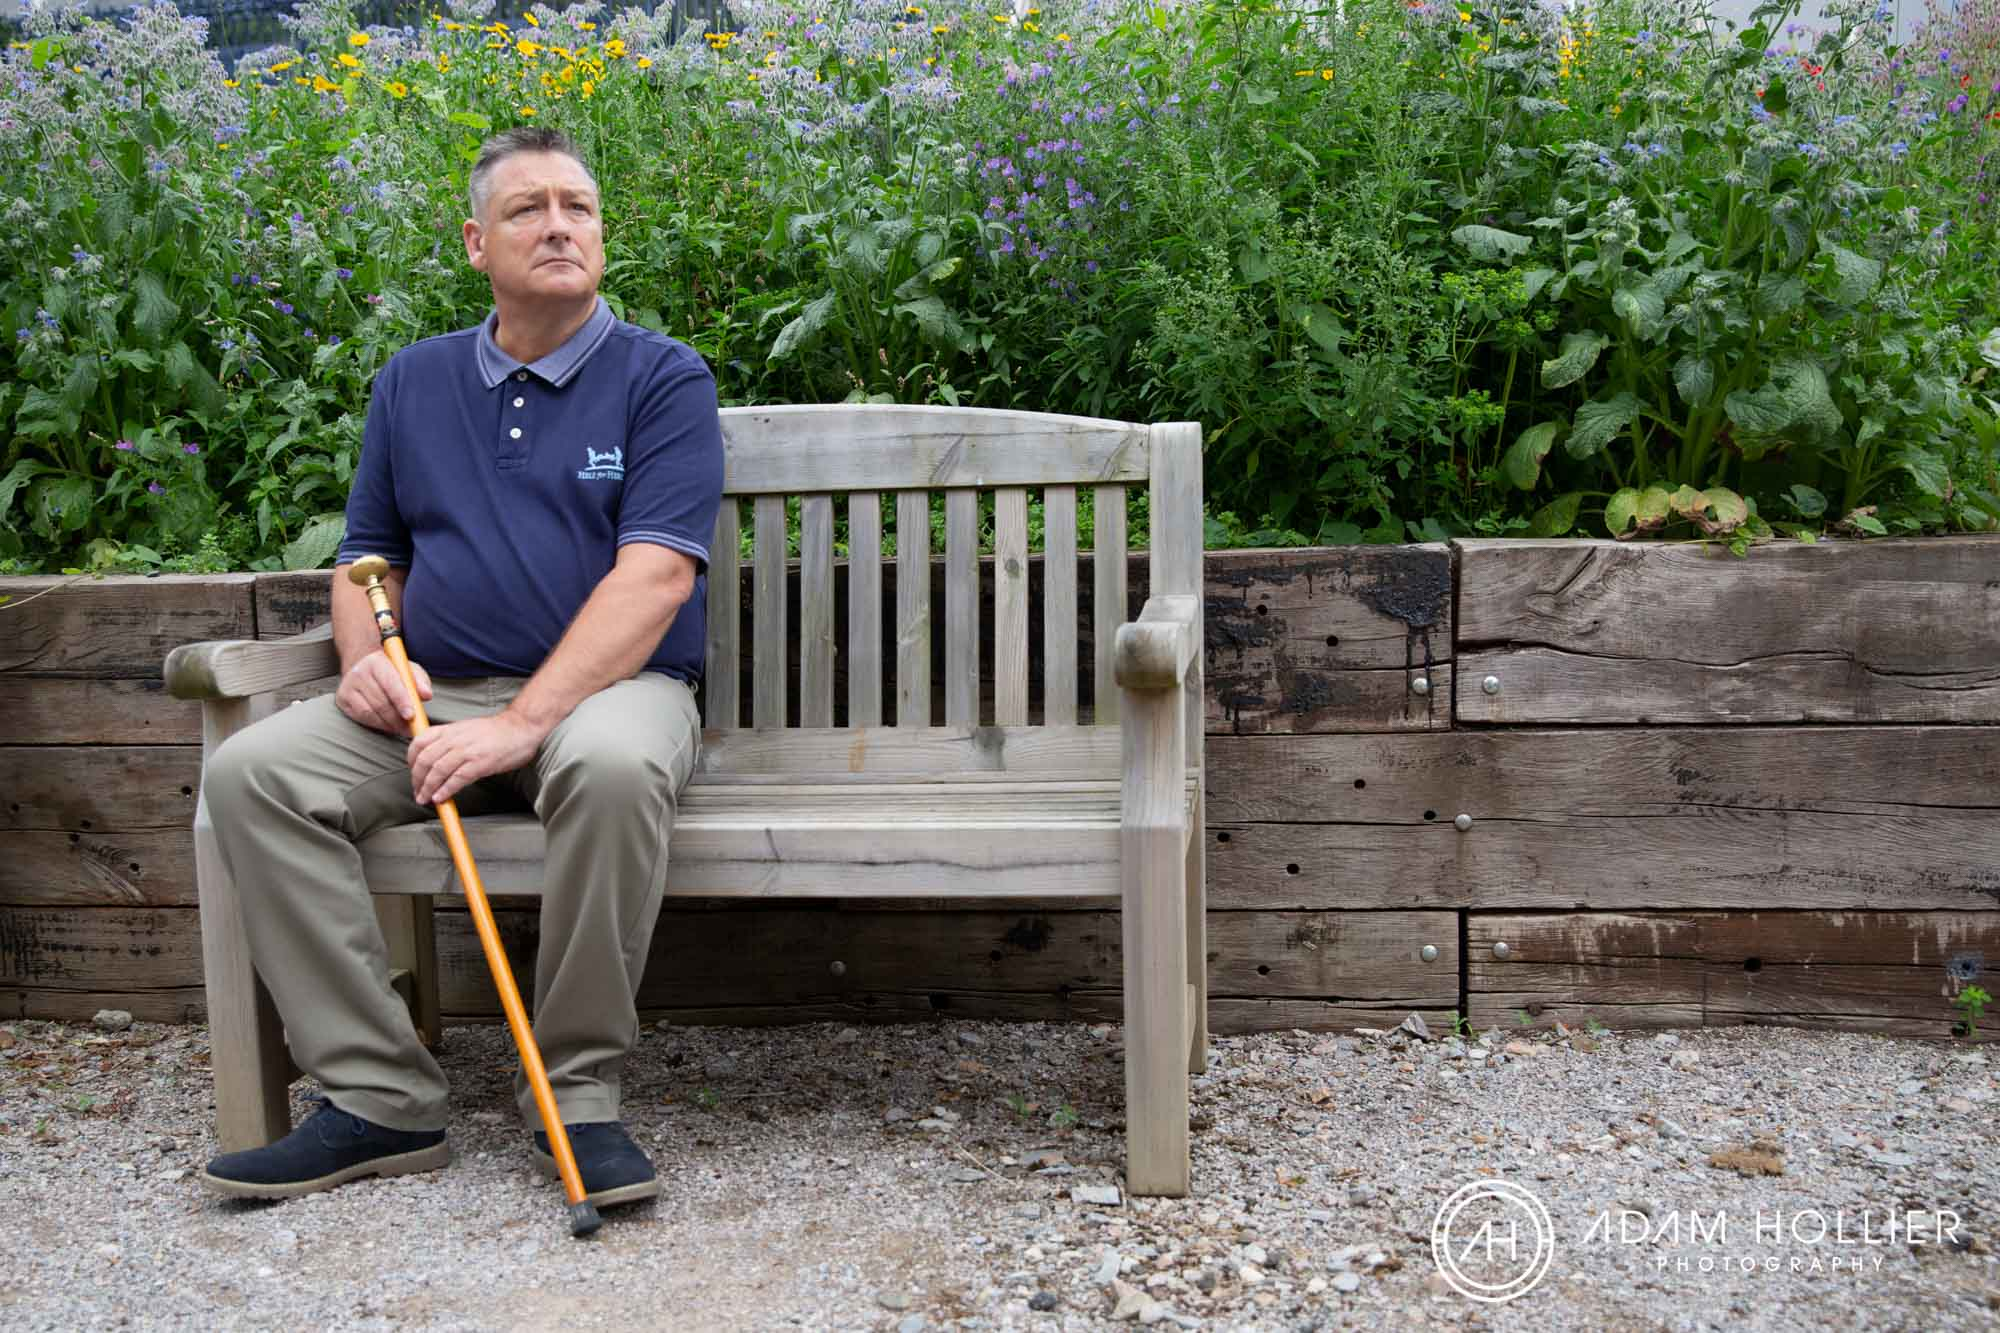 Earlier in the year I was commissioned by Help for Heroes to photograph former soldiers and their artwork for an upcoming  exhibition  exploring how art can help their recovery. This was taken in the Help for Heroes garden in the naval base in Plymouth.